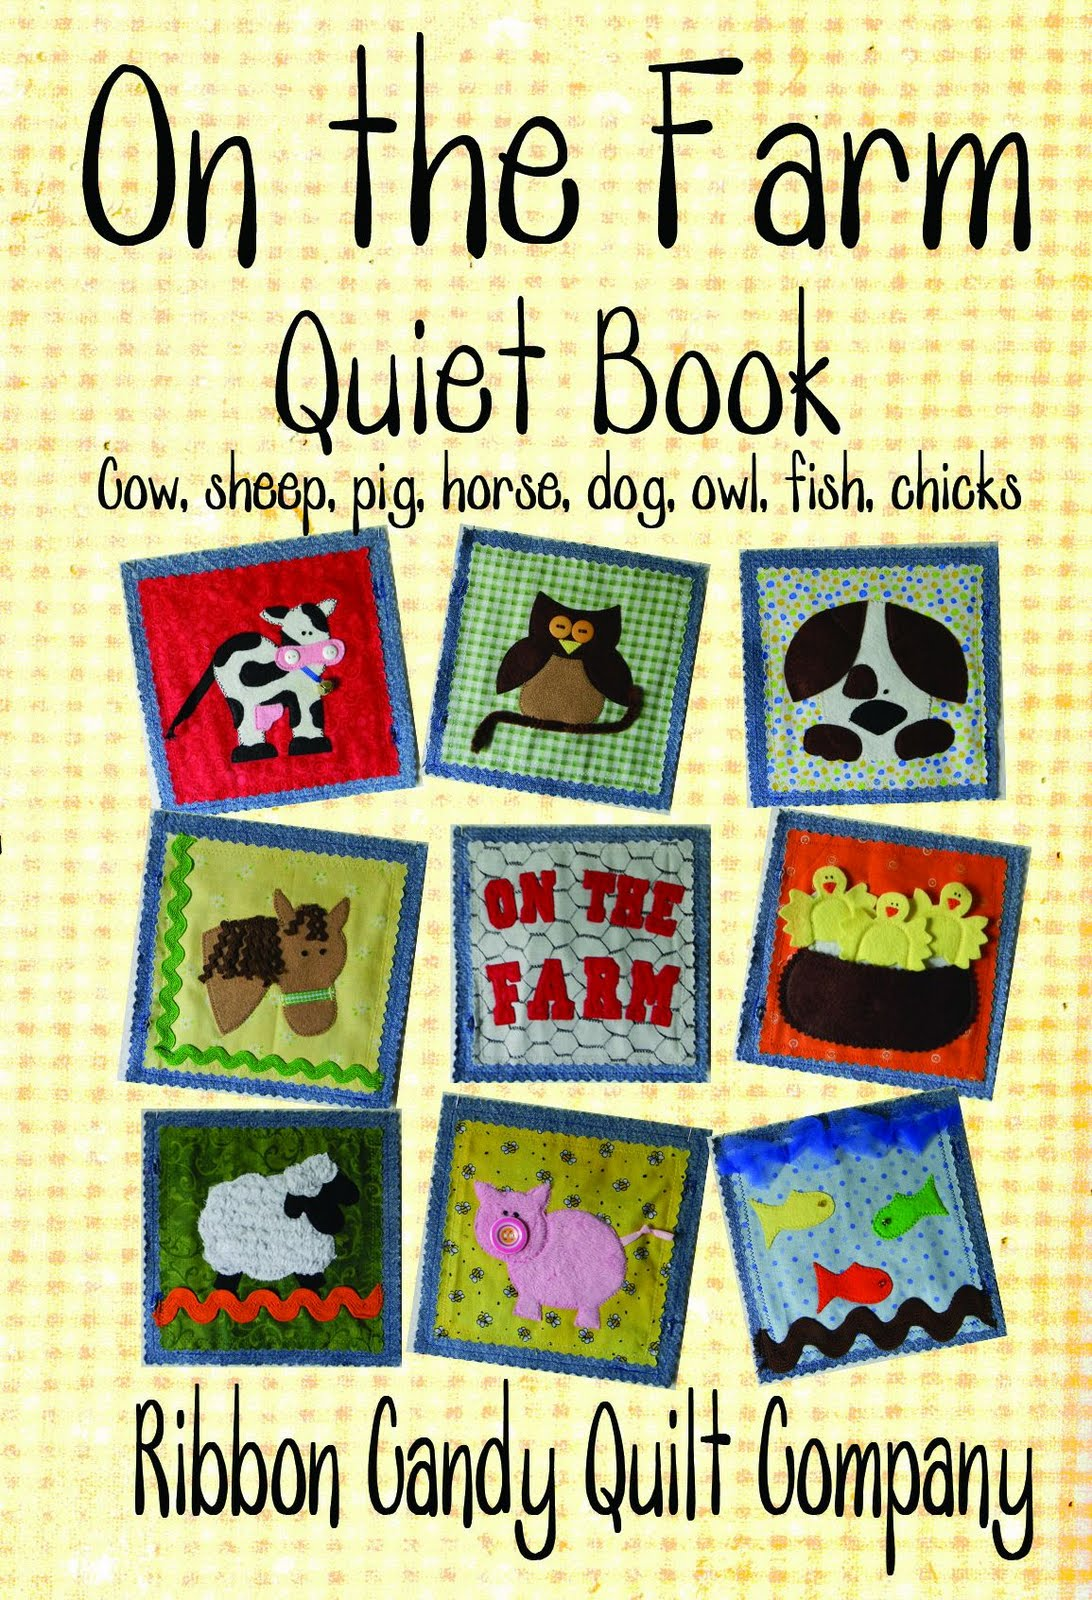 Quiet Book Cover Pattern : Ribbon candy quilt company free pattern